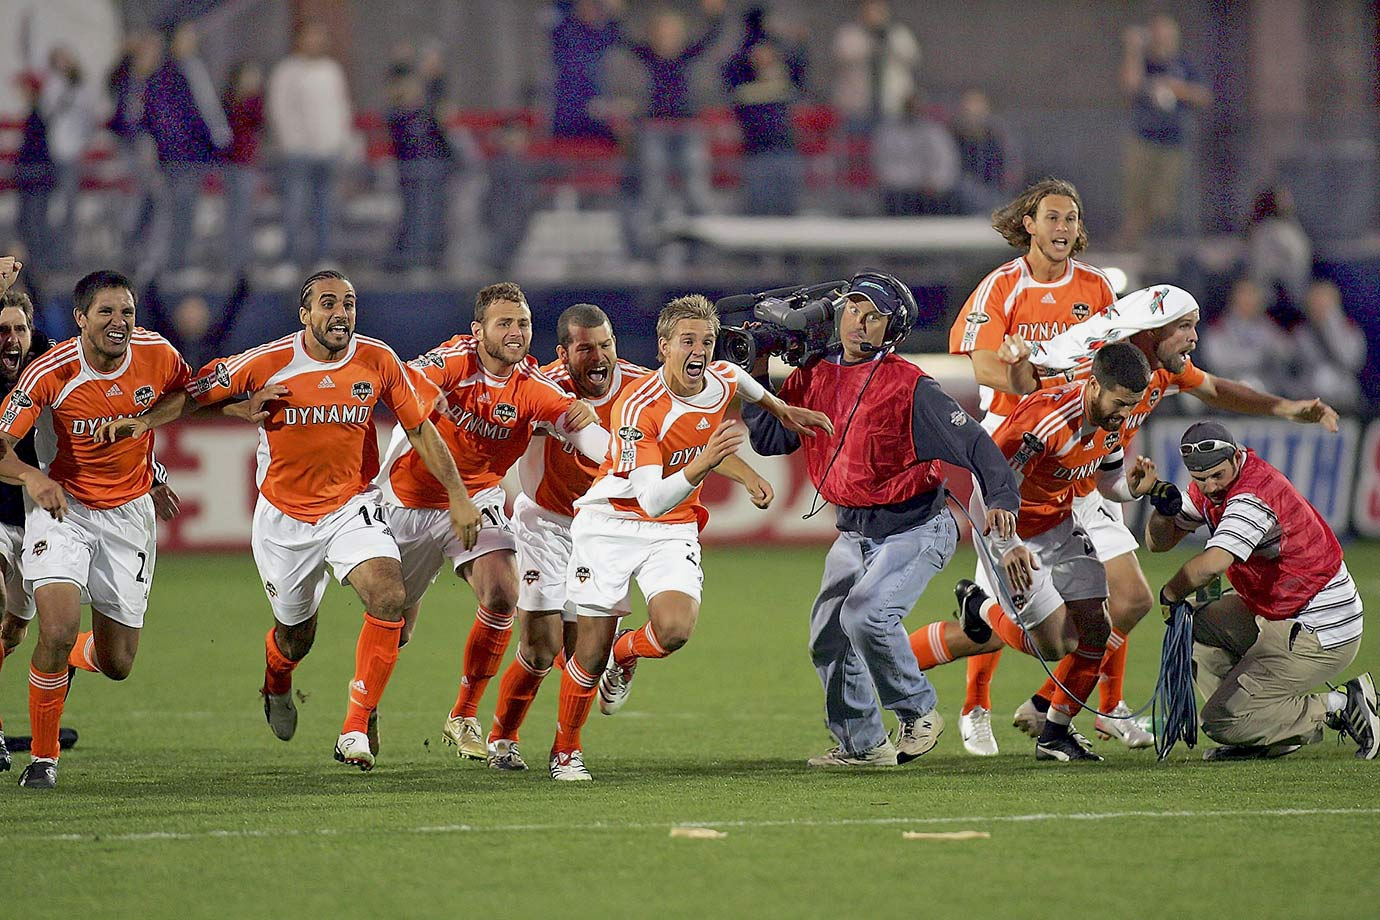 2006 — Houston Dynamo (beat New England Revolution in penalty kicks after 1-1 draw)